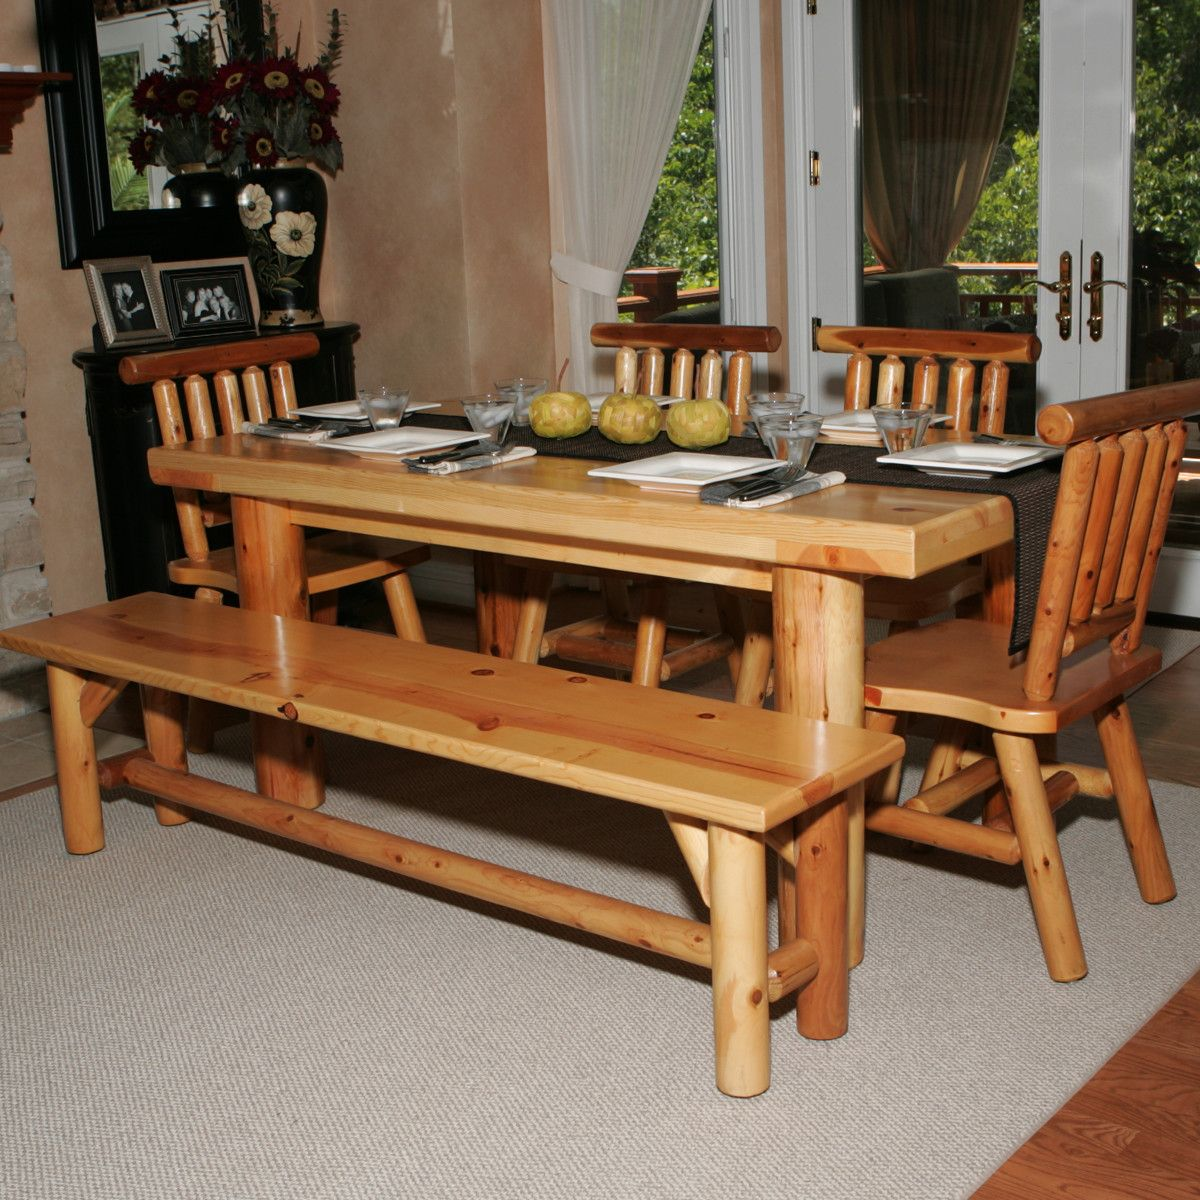 26 Big & Small Dining Room Sets with Bench Seating | White cedar ...